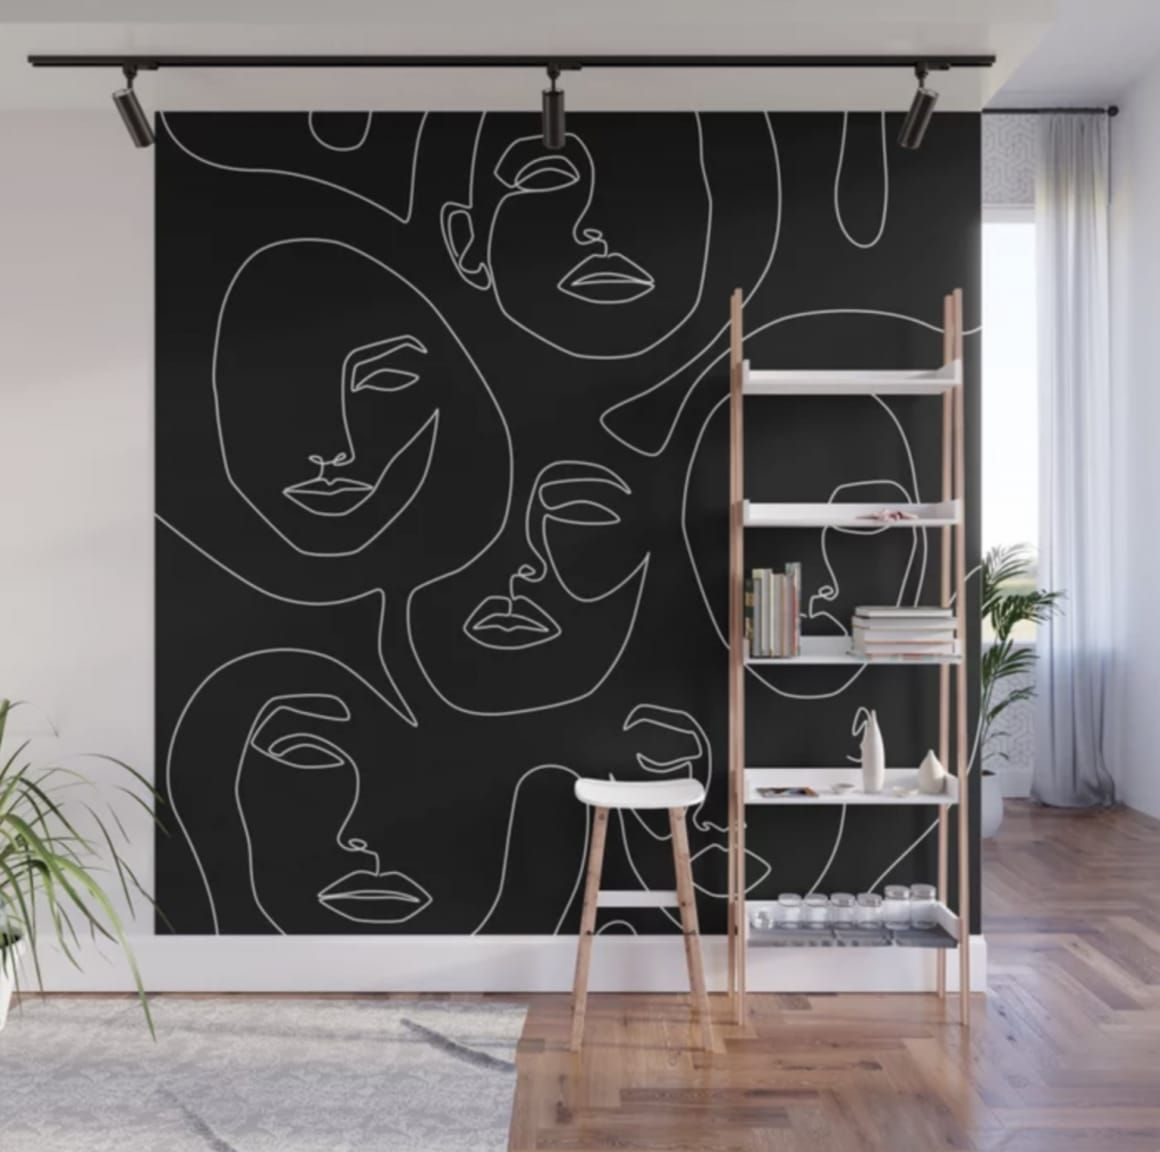 These Wall Murals Require Zero Artistic Skill